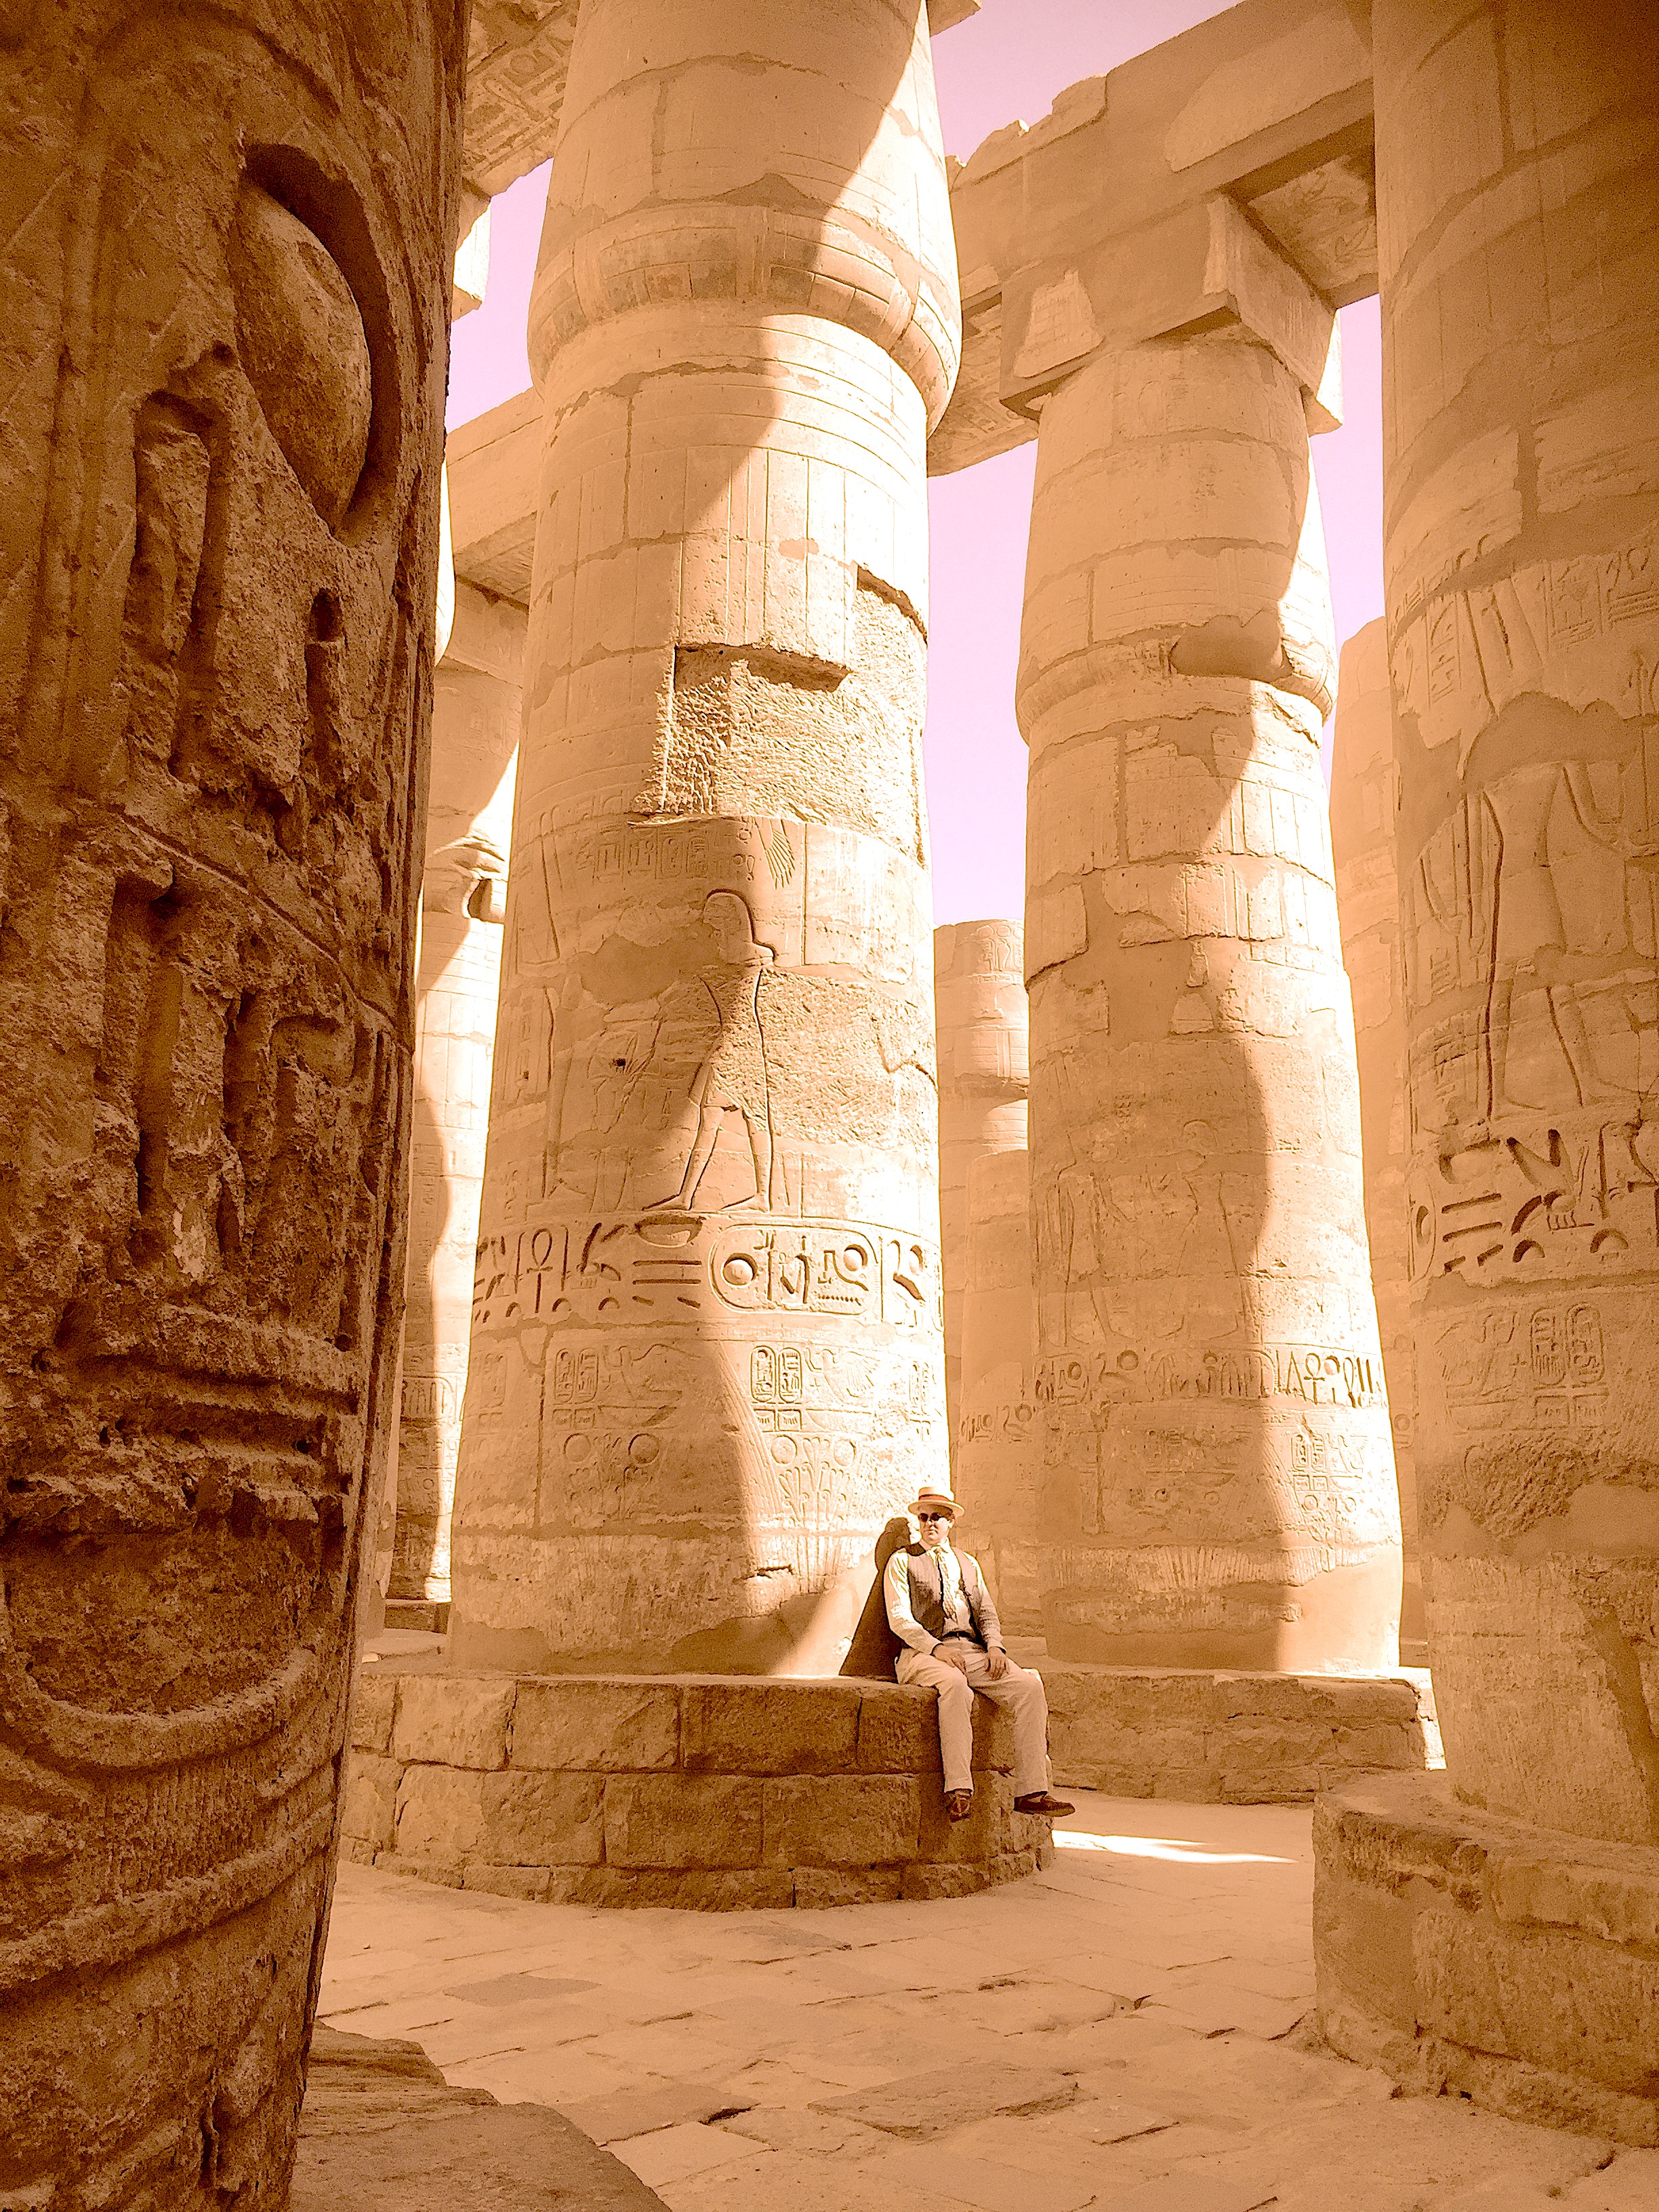 Dr. Doran in Egypt, at Luxor.